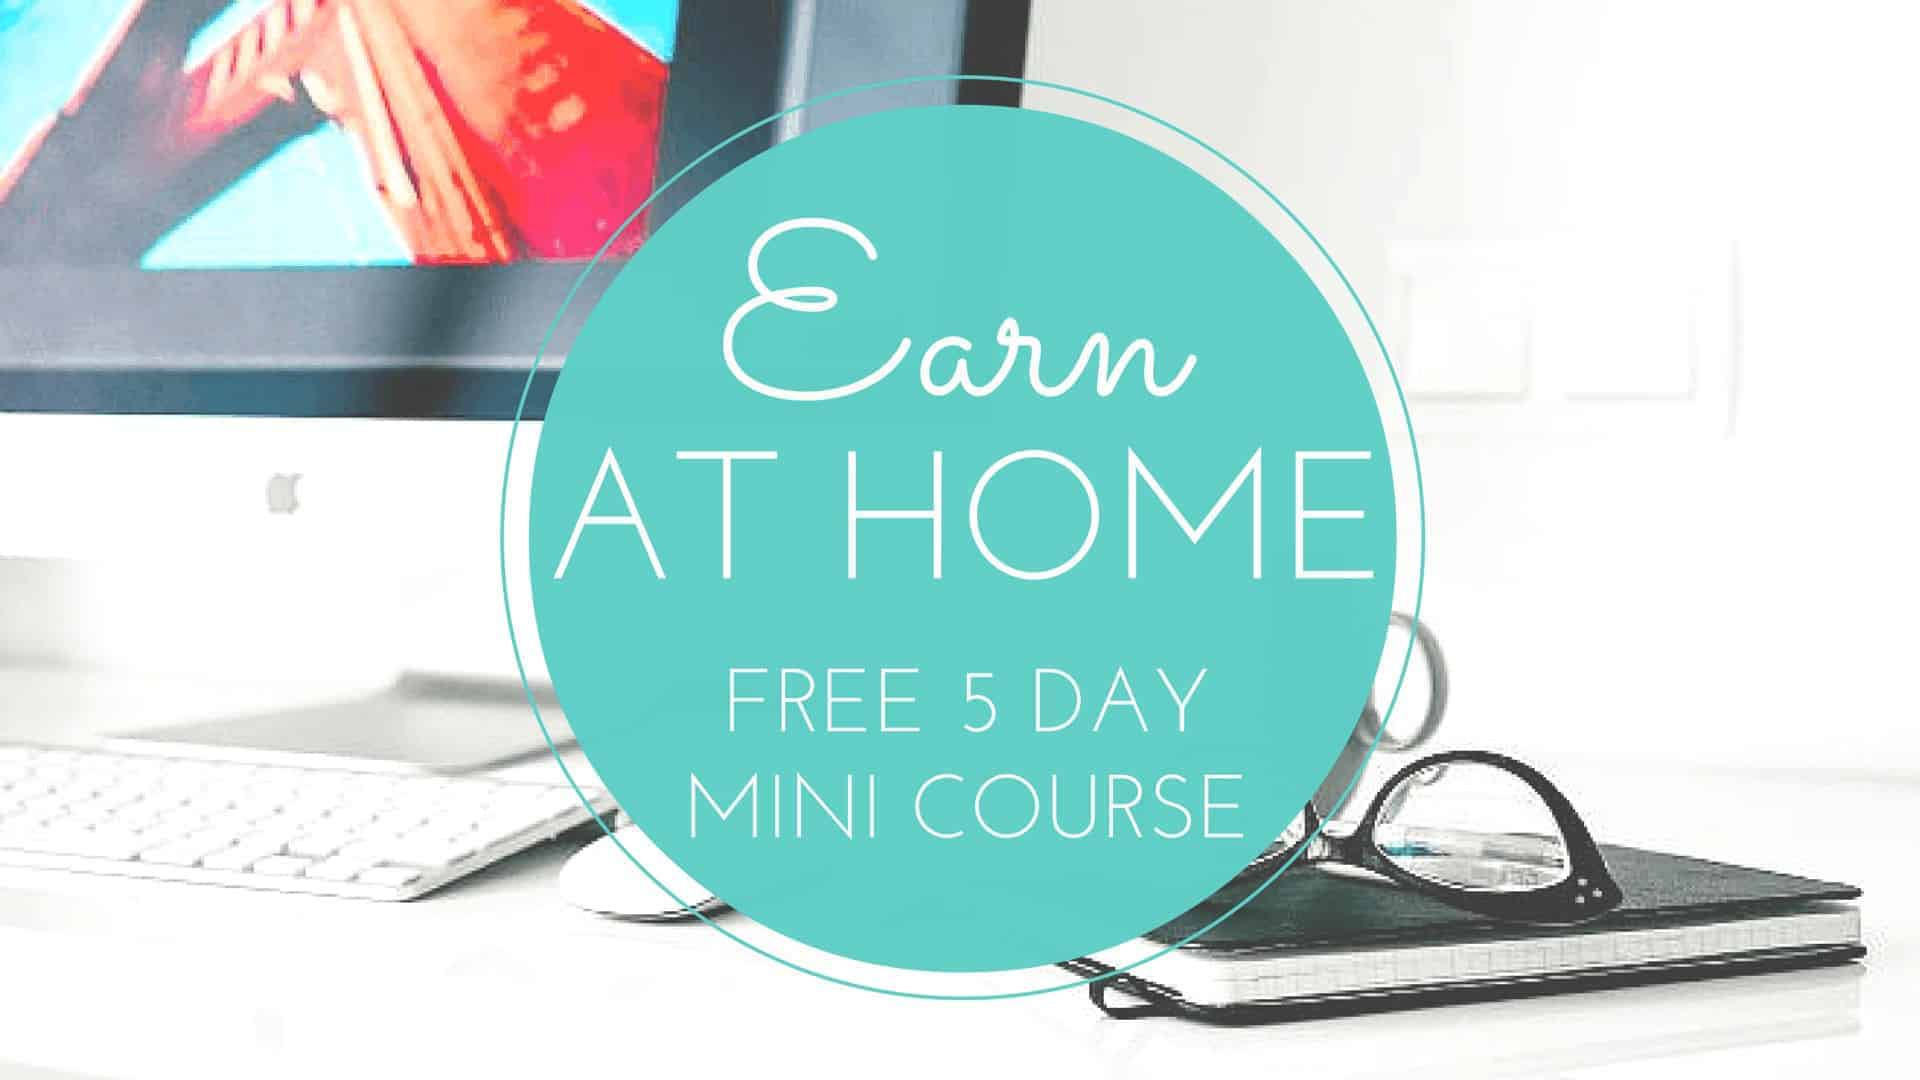 Sign up for the free 5 day earn at home mini course to start earning money from home your way